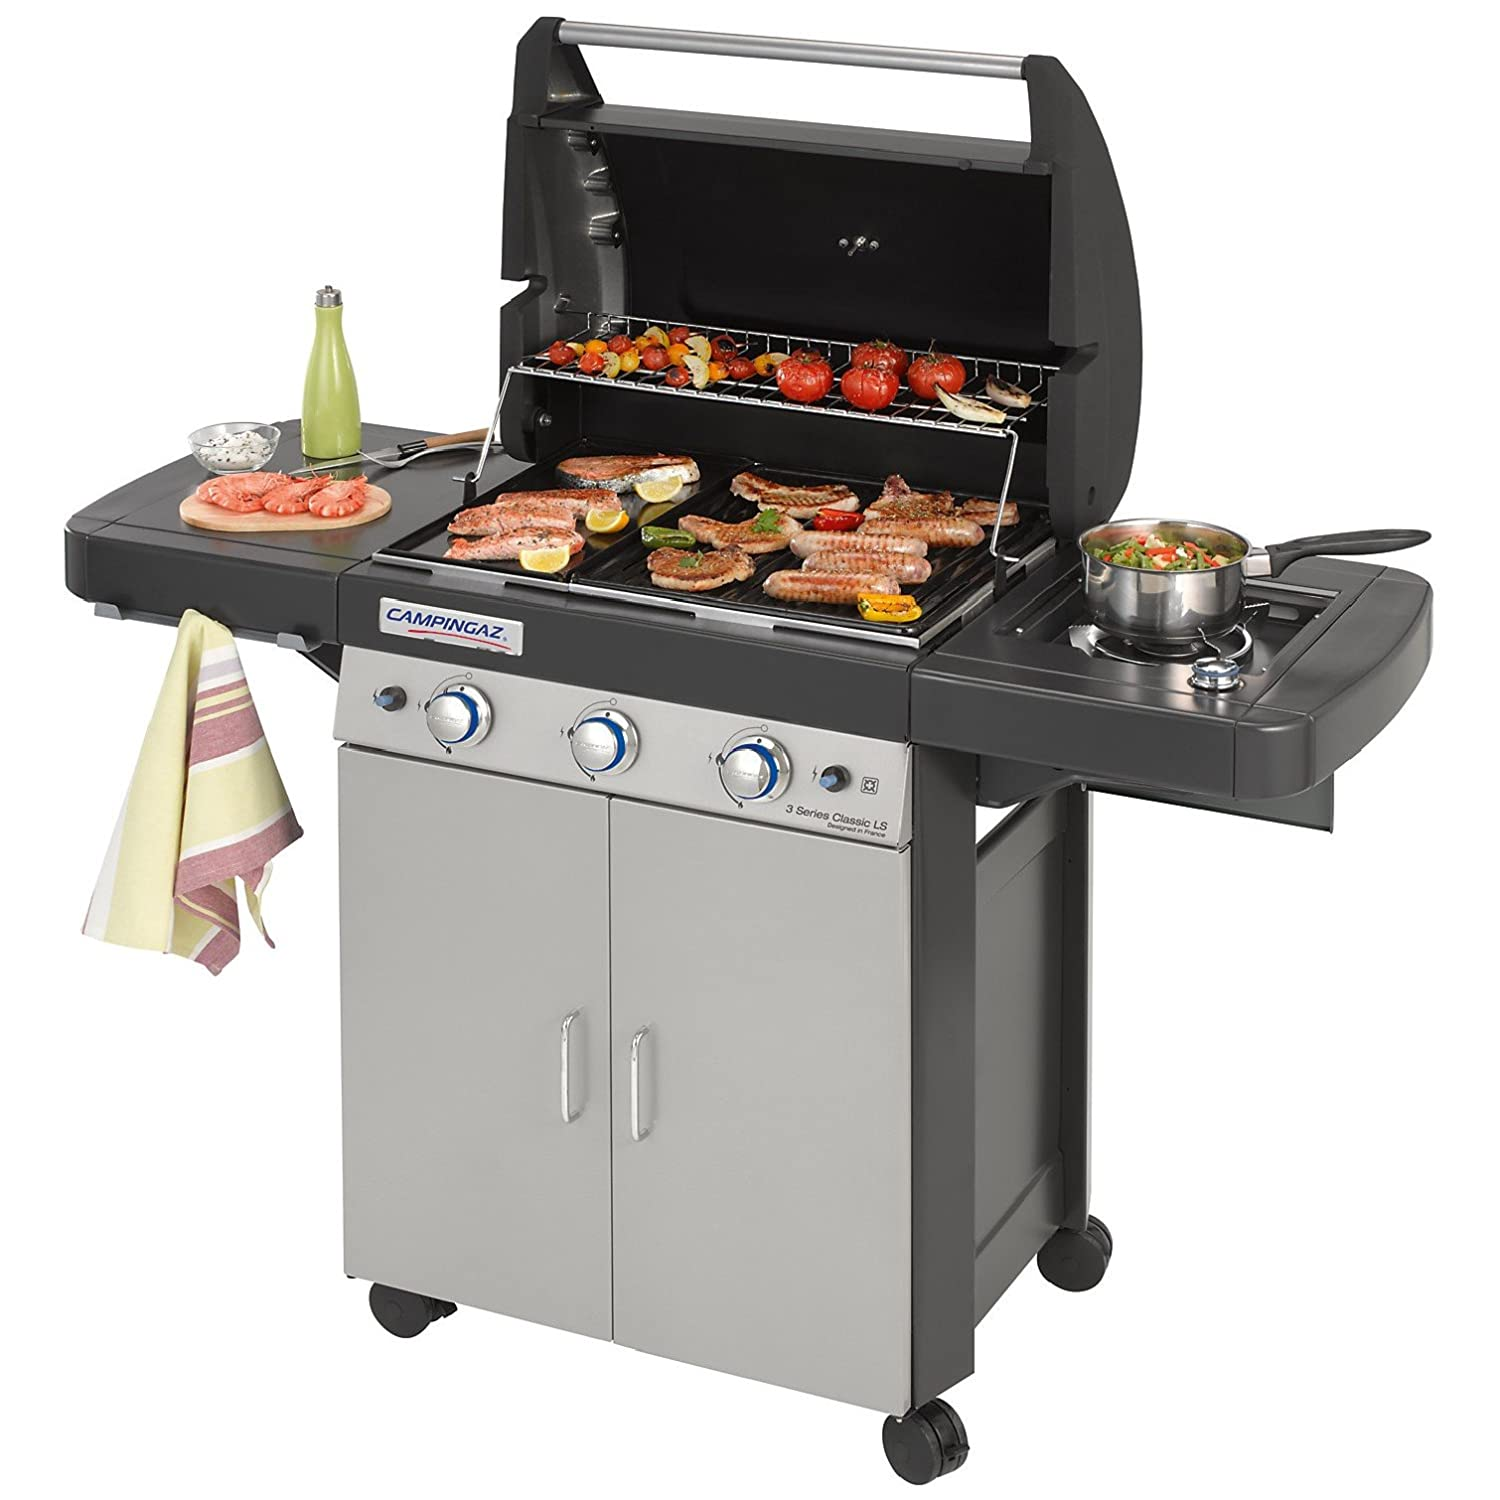 Campingaz 3 Series.Campingaz Gas Bbq 3 Series Classic Ls 3 1 Burner Stainless Steel Gas Barbecue Large Gas Grill With Side Burner Stamped Steel Grid Griddle